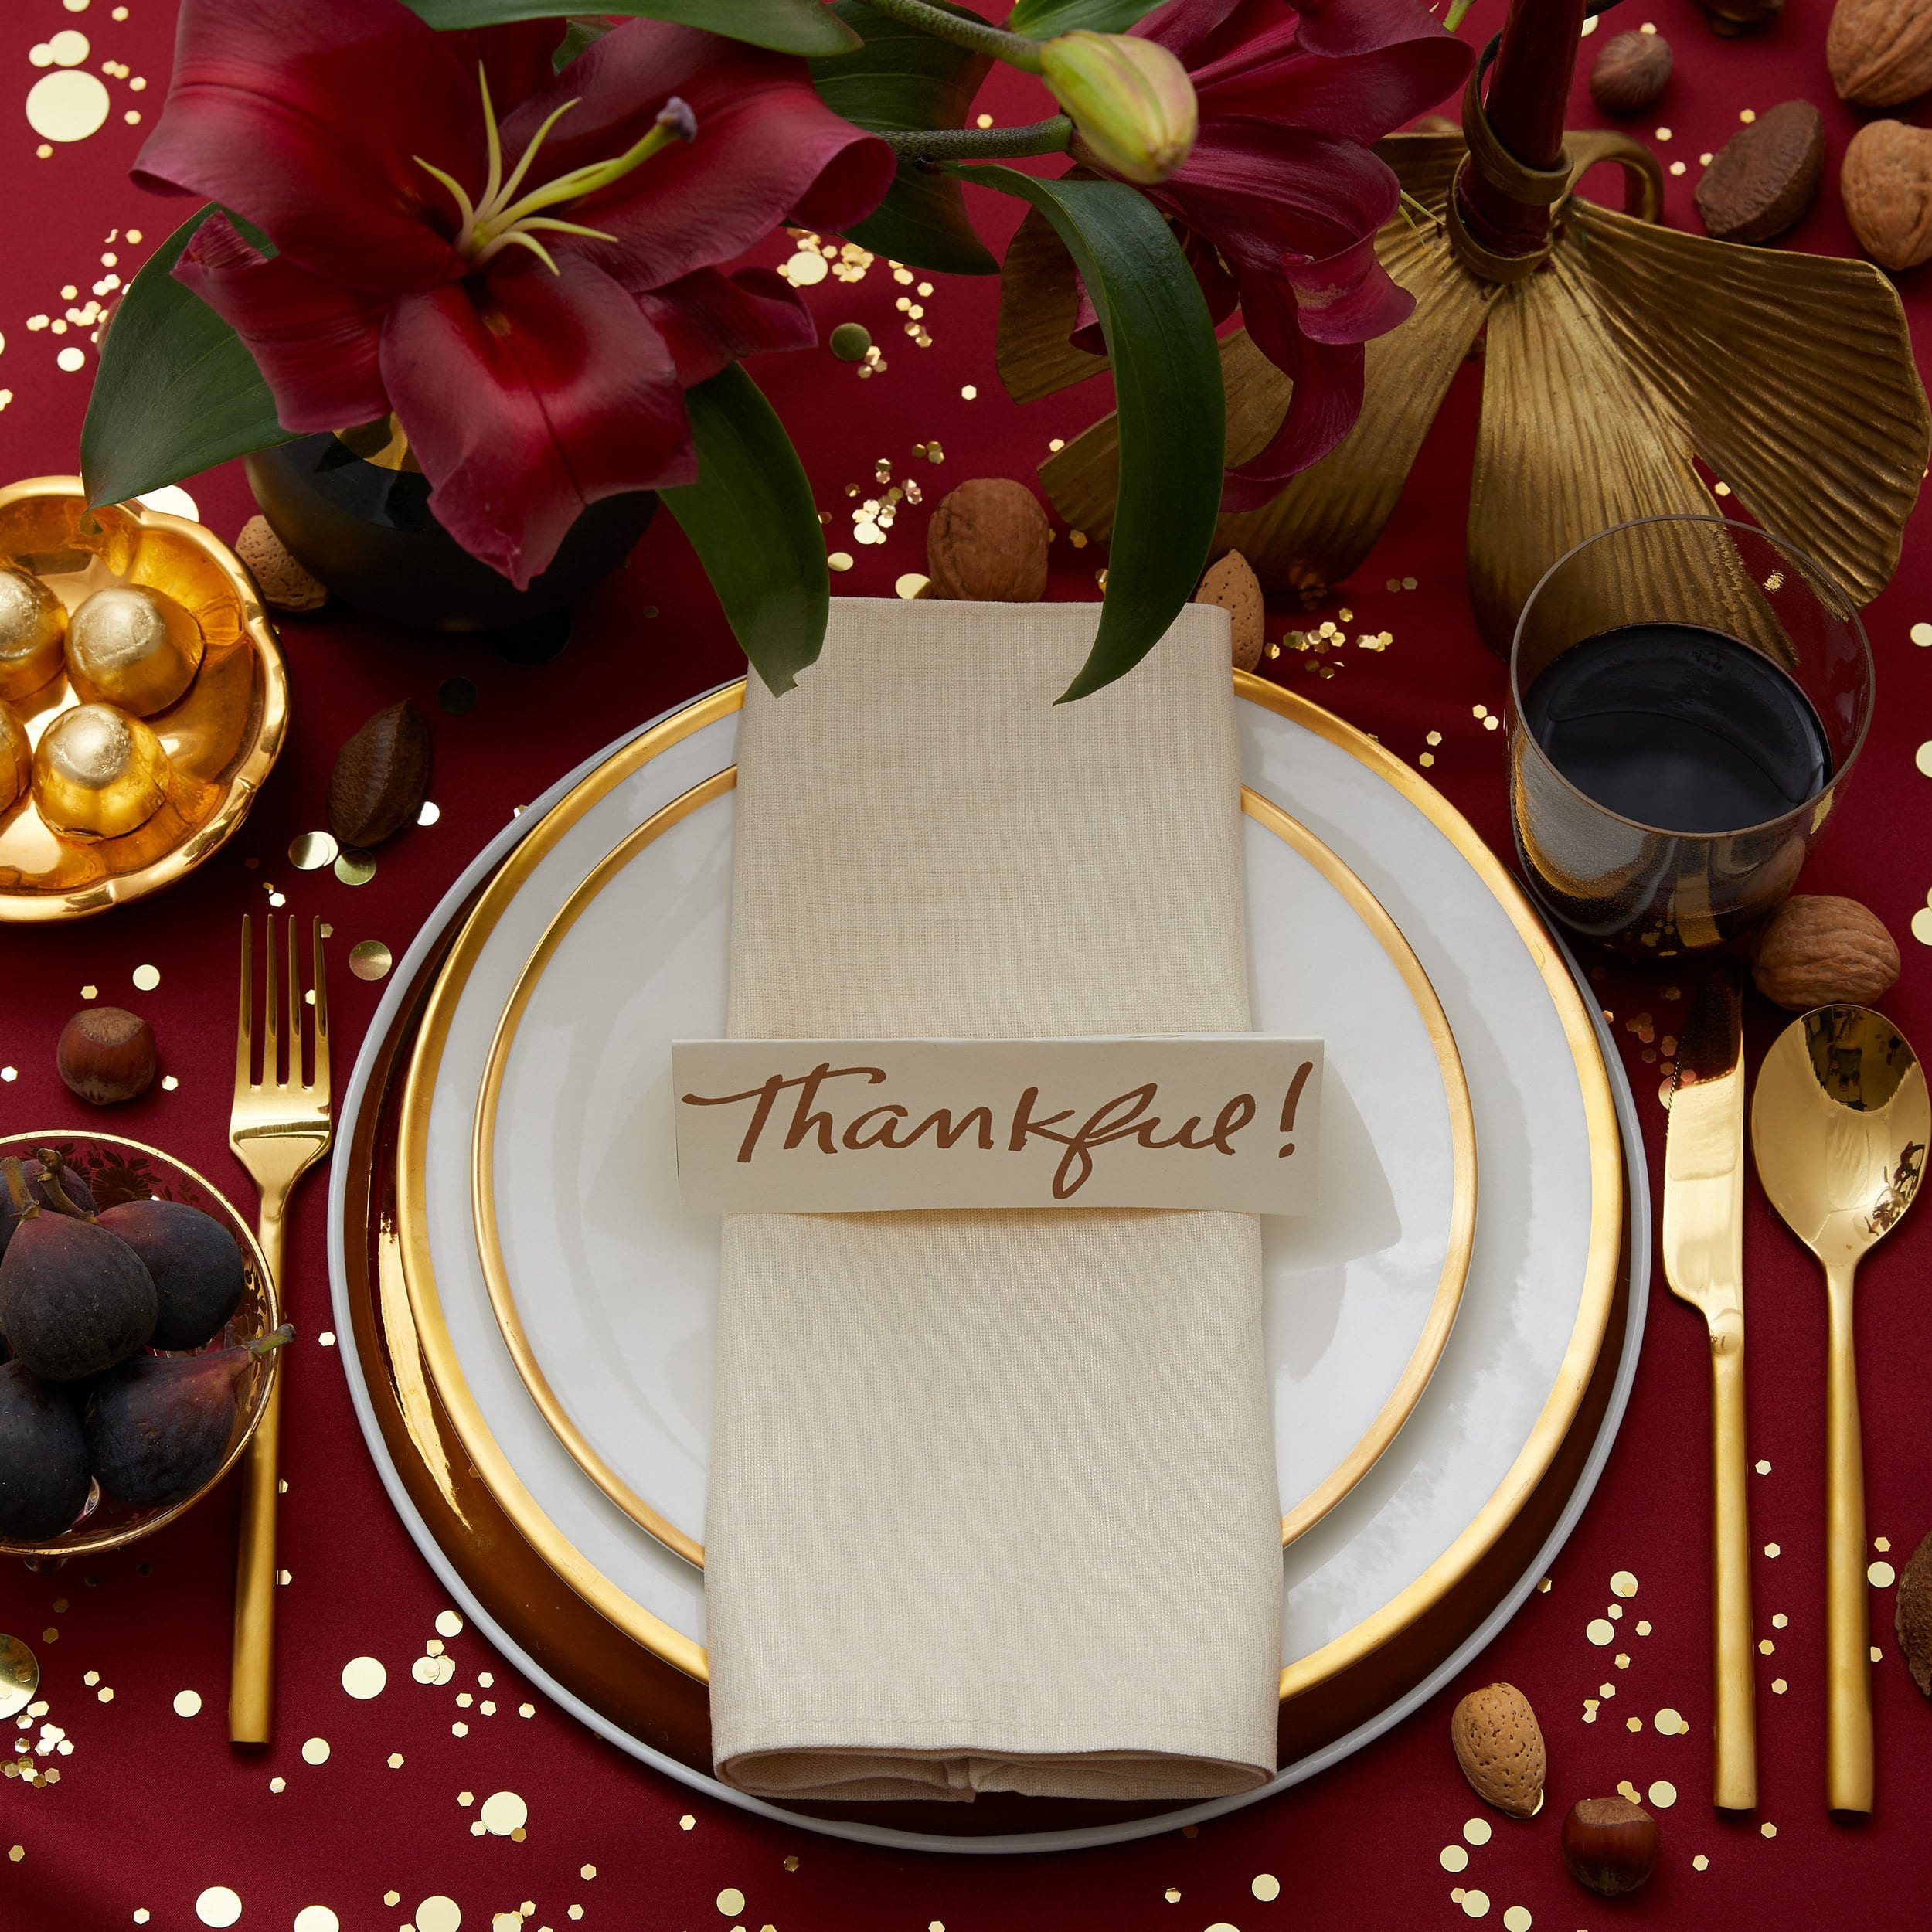 Darcy Miller, Darcy Miller Designs, Thanksgiving, Place setting, table setting, thankful, place card, easy, Printable, Template